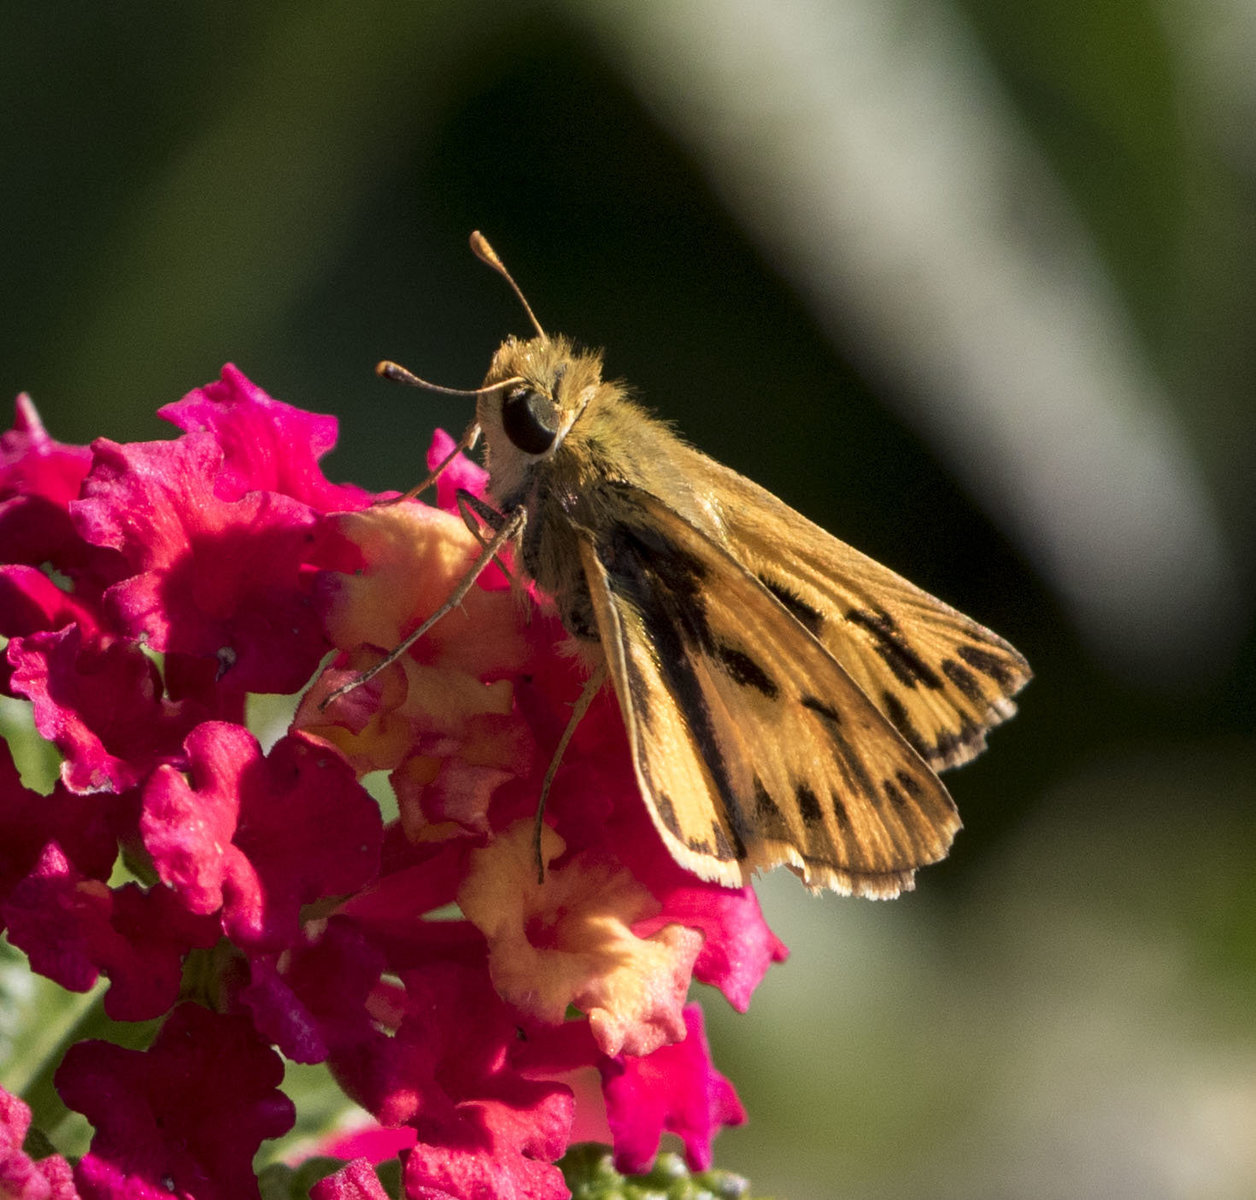 It was an excellent summer and fall for fiery skippers, with sightings from July 11 to November 18. Beth Polvino found this female in her garden in North Cape May on 11/